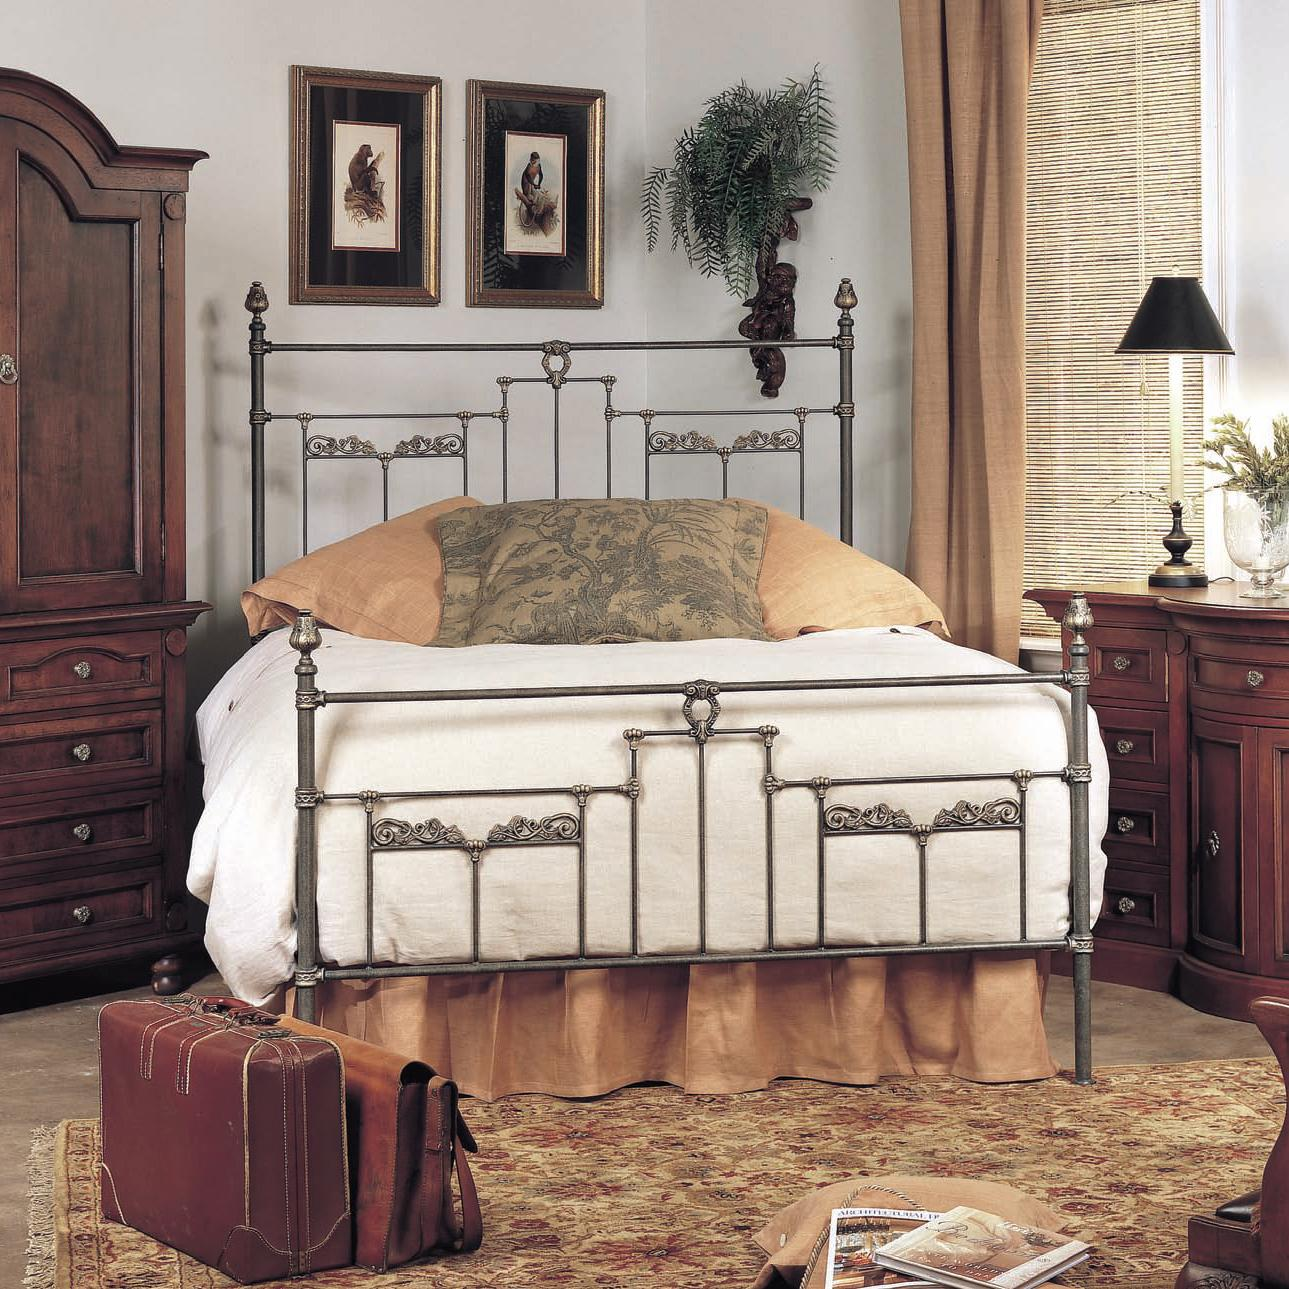 Custom Design Iron and Metal Beds Natura Metal Bed by Old Biscayne Designs at Jacksonville Furniture Mart